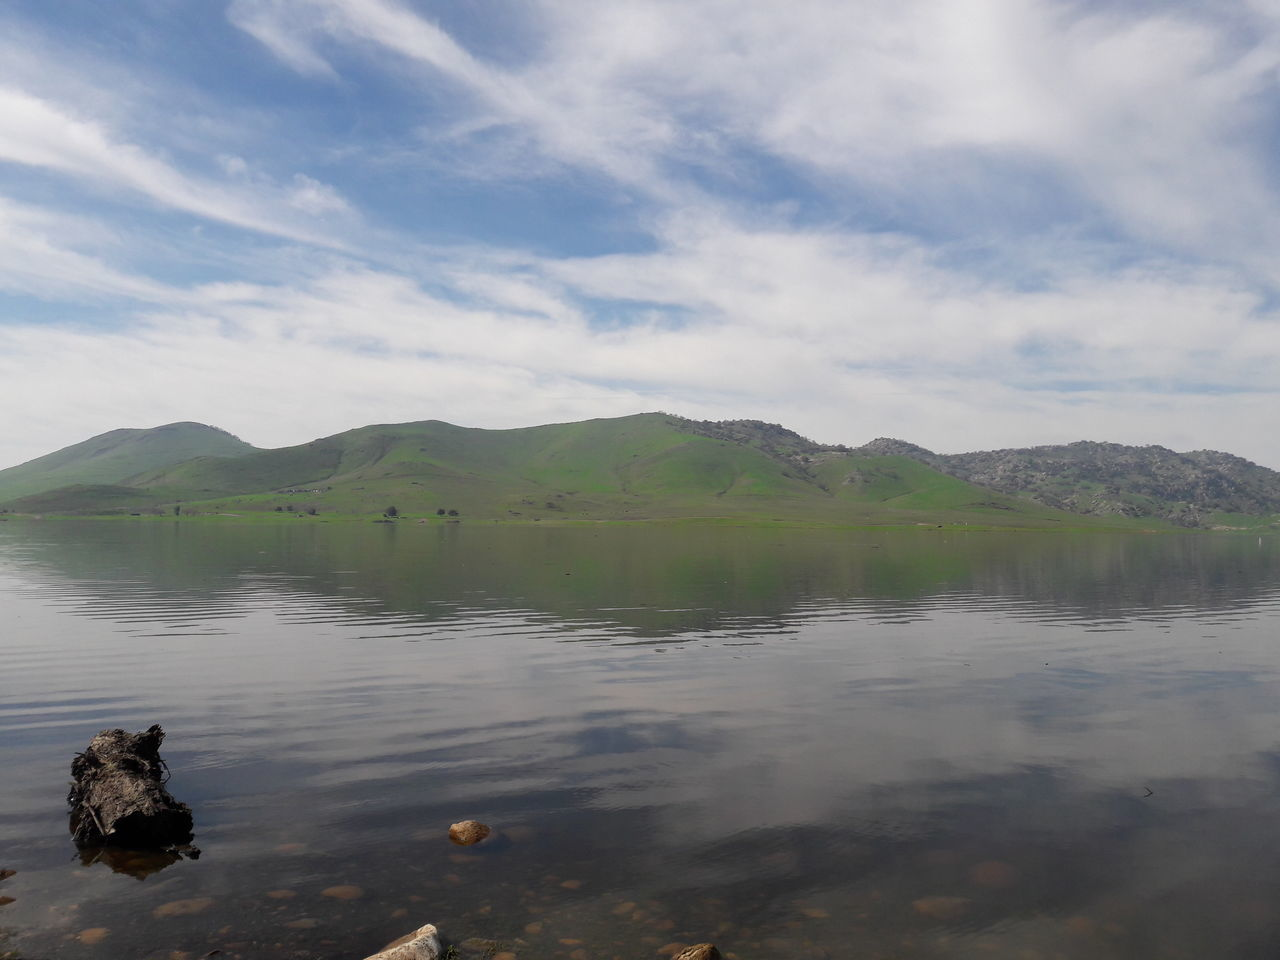 water, sky, nature, reflection, lake, tranquility, tranquil scene, scenics, mountain, day, beauty in nature, outdoors, cloud - sky, no people, animal themes, mammal